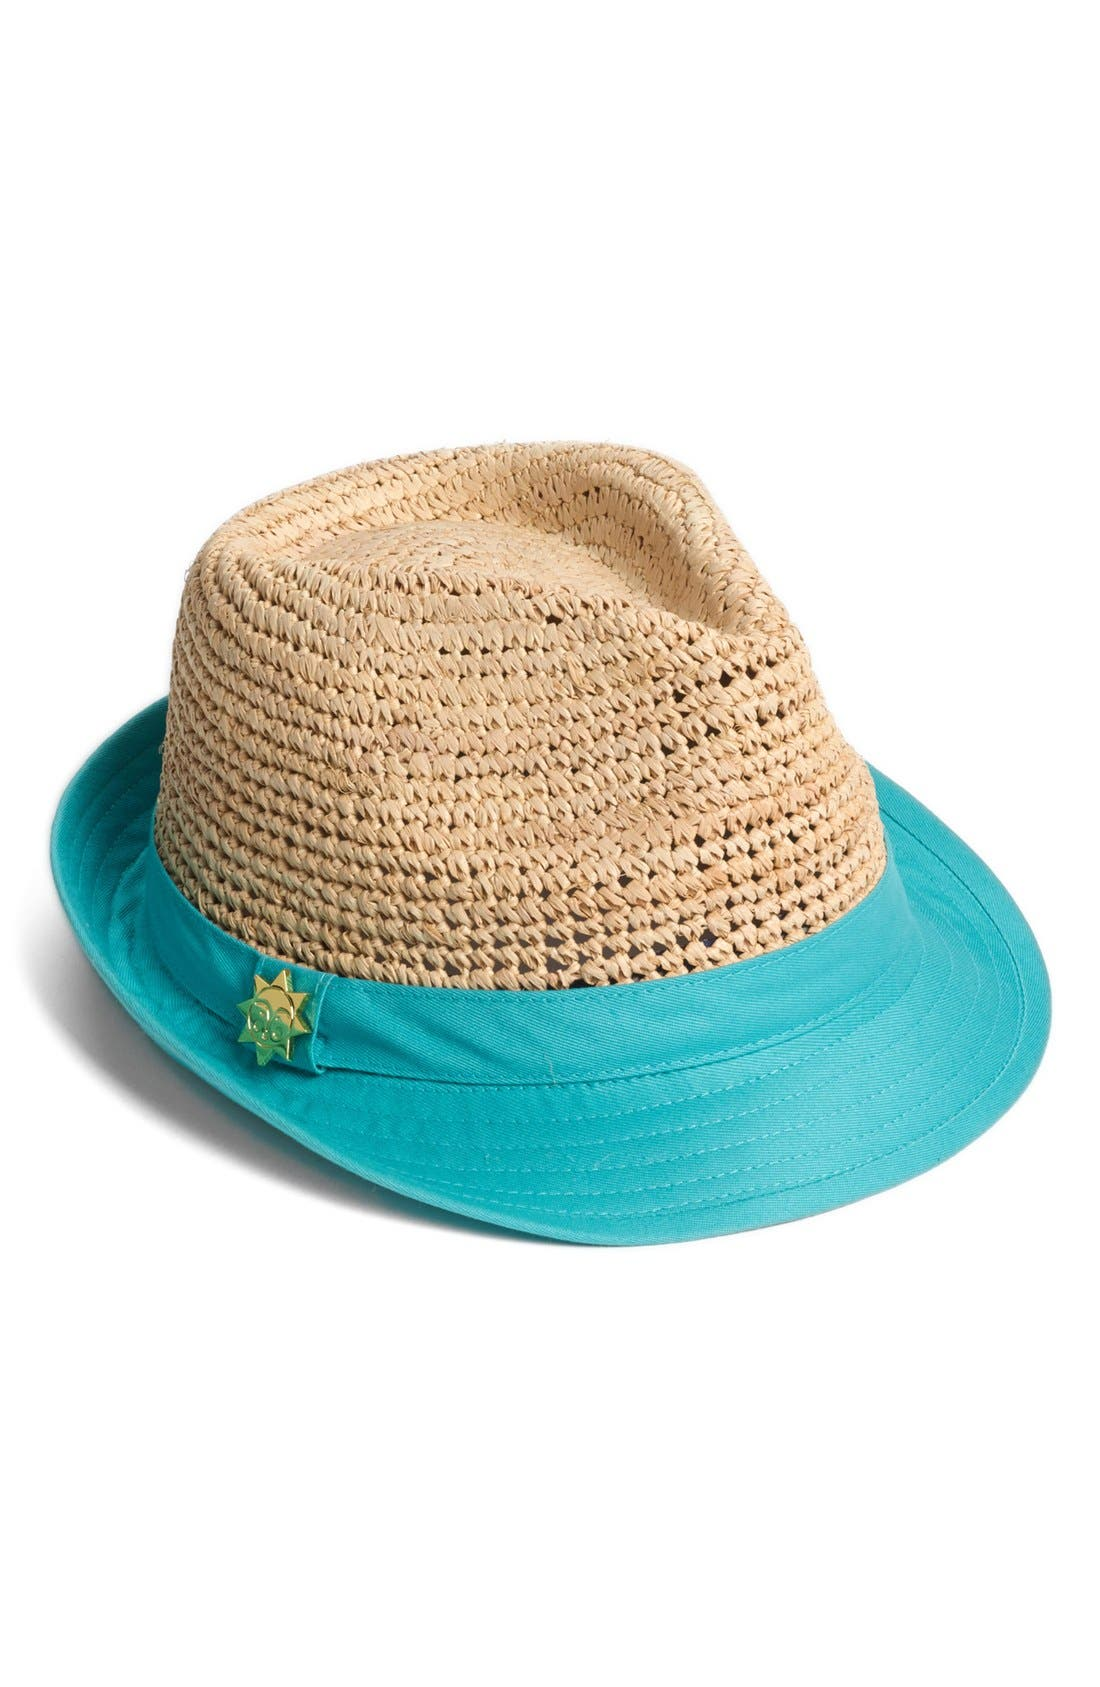 Alternate Image 1 Selected - Jonathan Adler 'Crushable' Contrast Brim Fedora